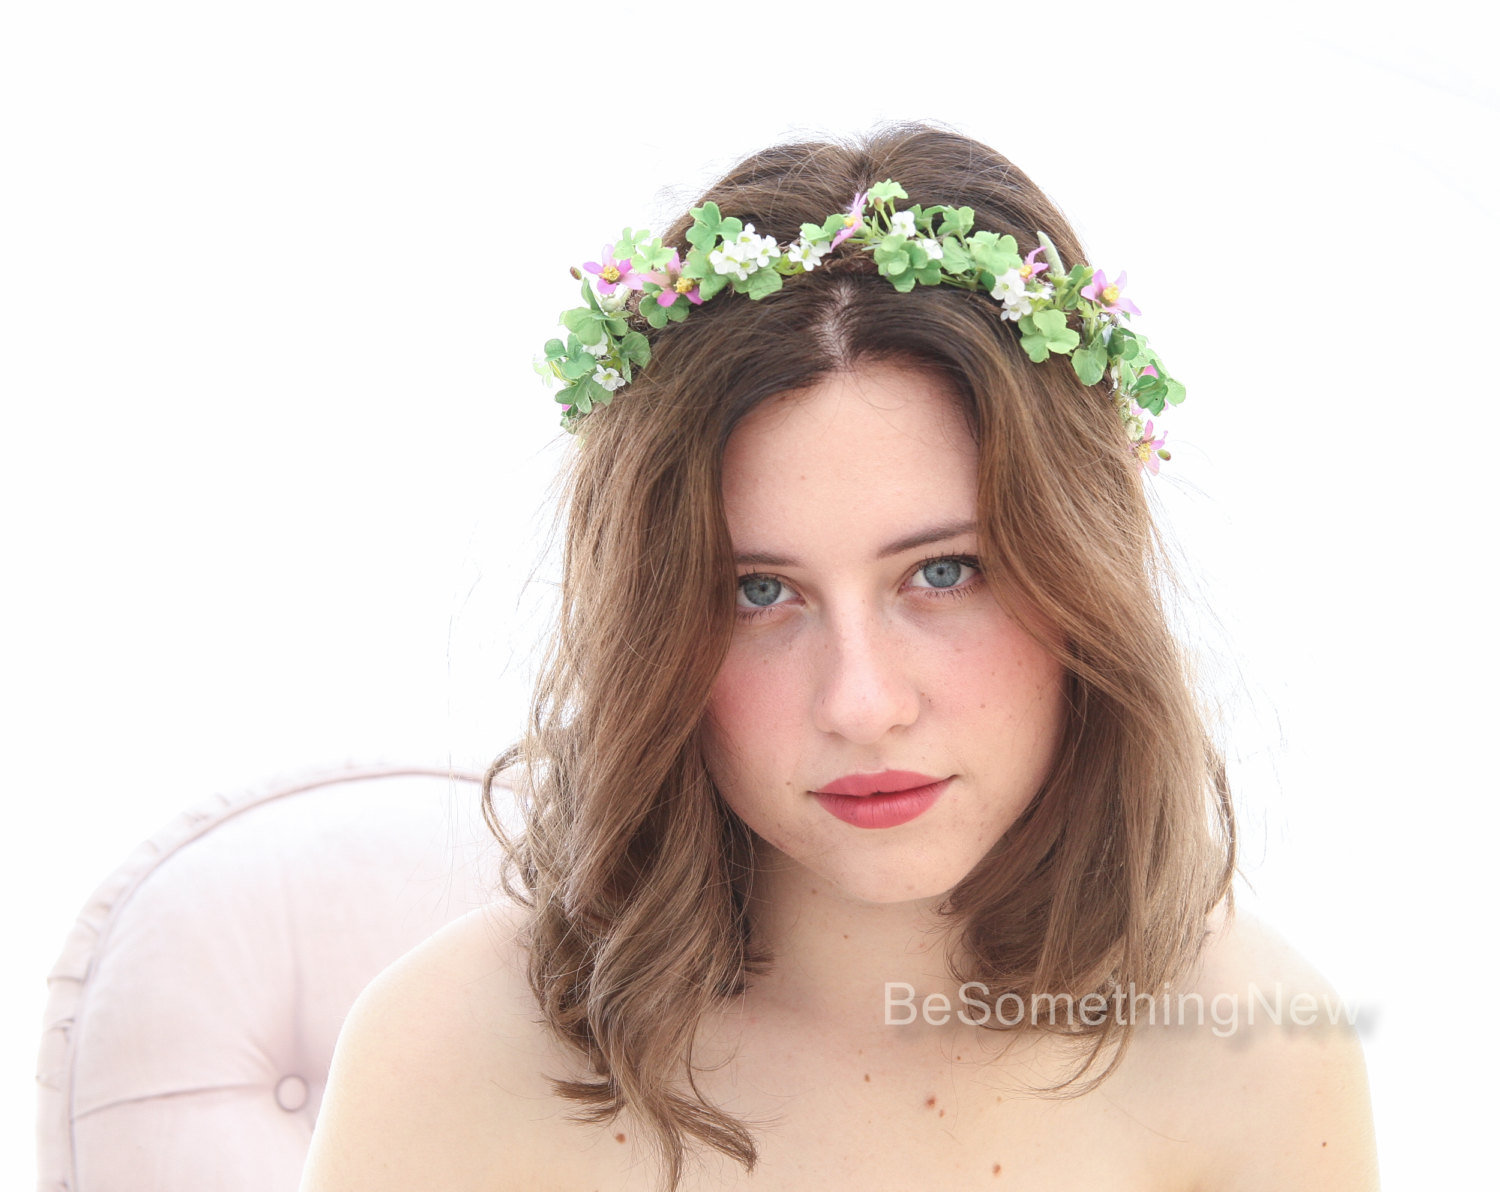 Green and Lilac Rustic Flower Crown Woodland Wedding Hair Halo Flower  Headband Boho Wedding Hair Wreath of Shamrock Leaves and Flowers – Be  Something New 40f7432042b